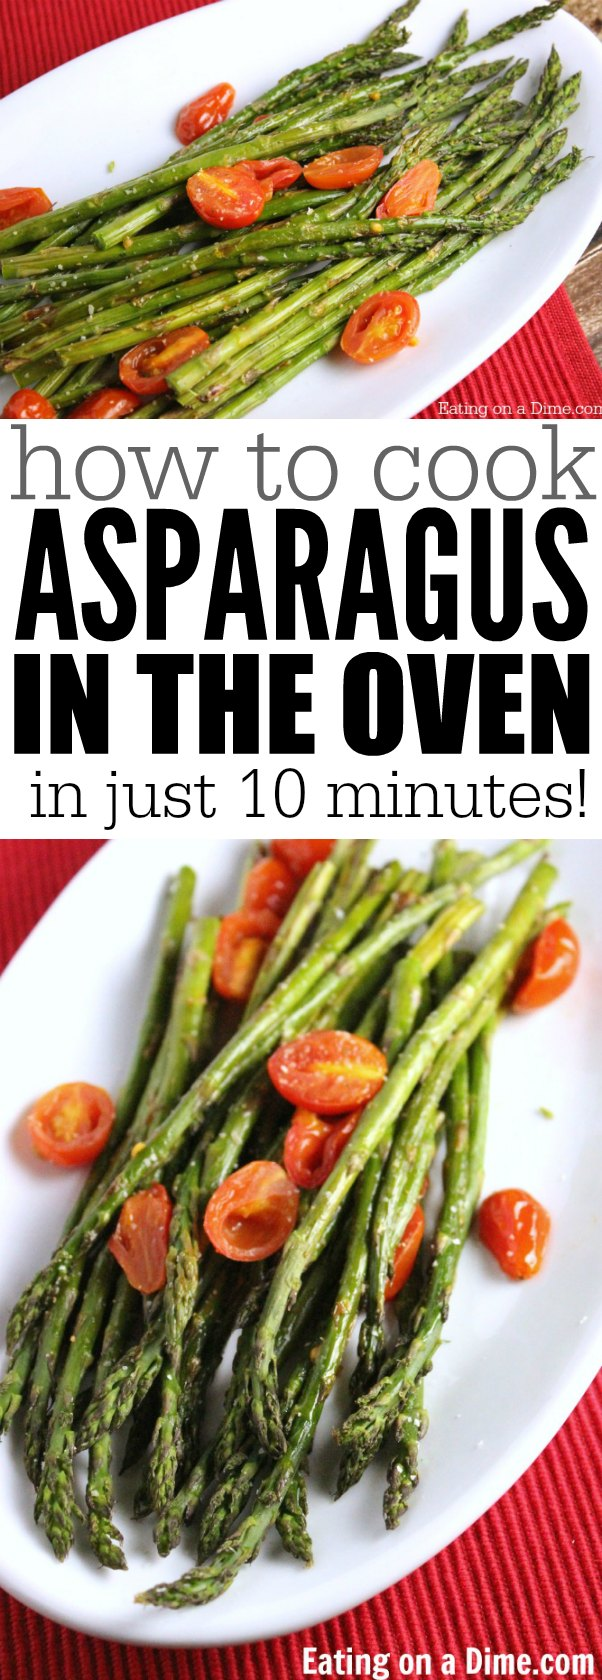 How To Coook Asparagus In The Oven  Easy Roasted Asparagus Recipe